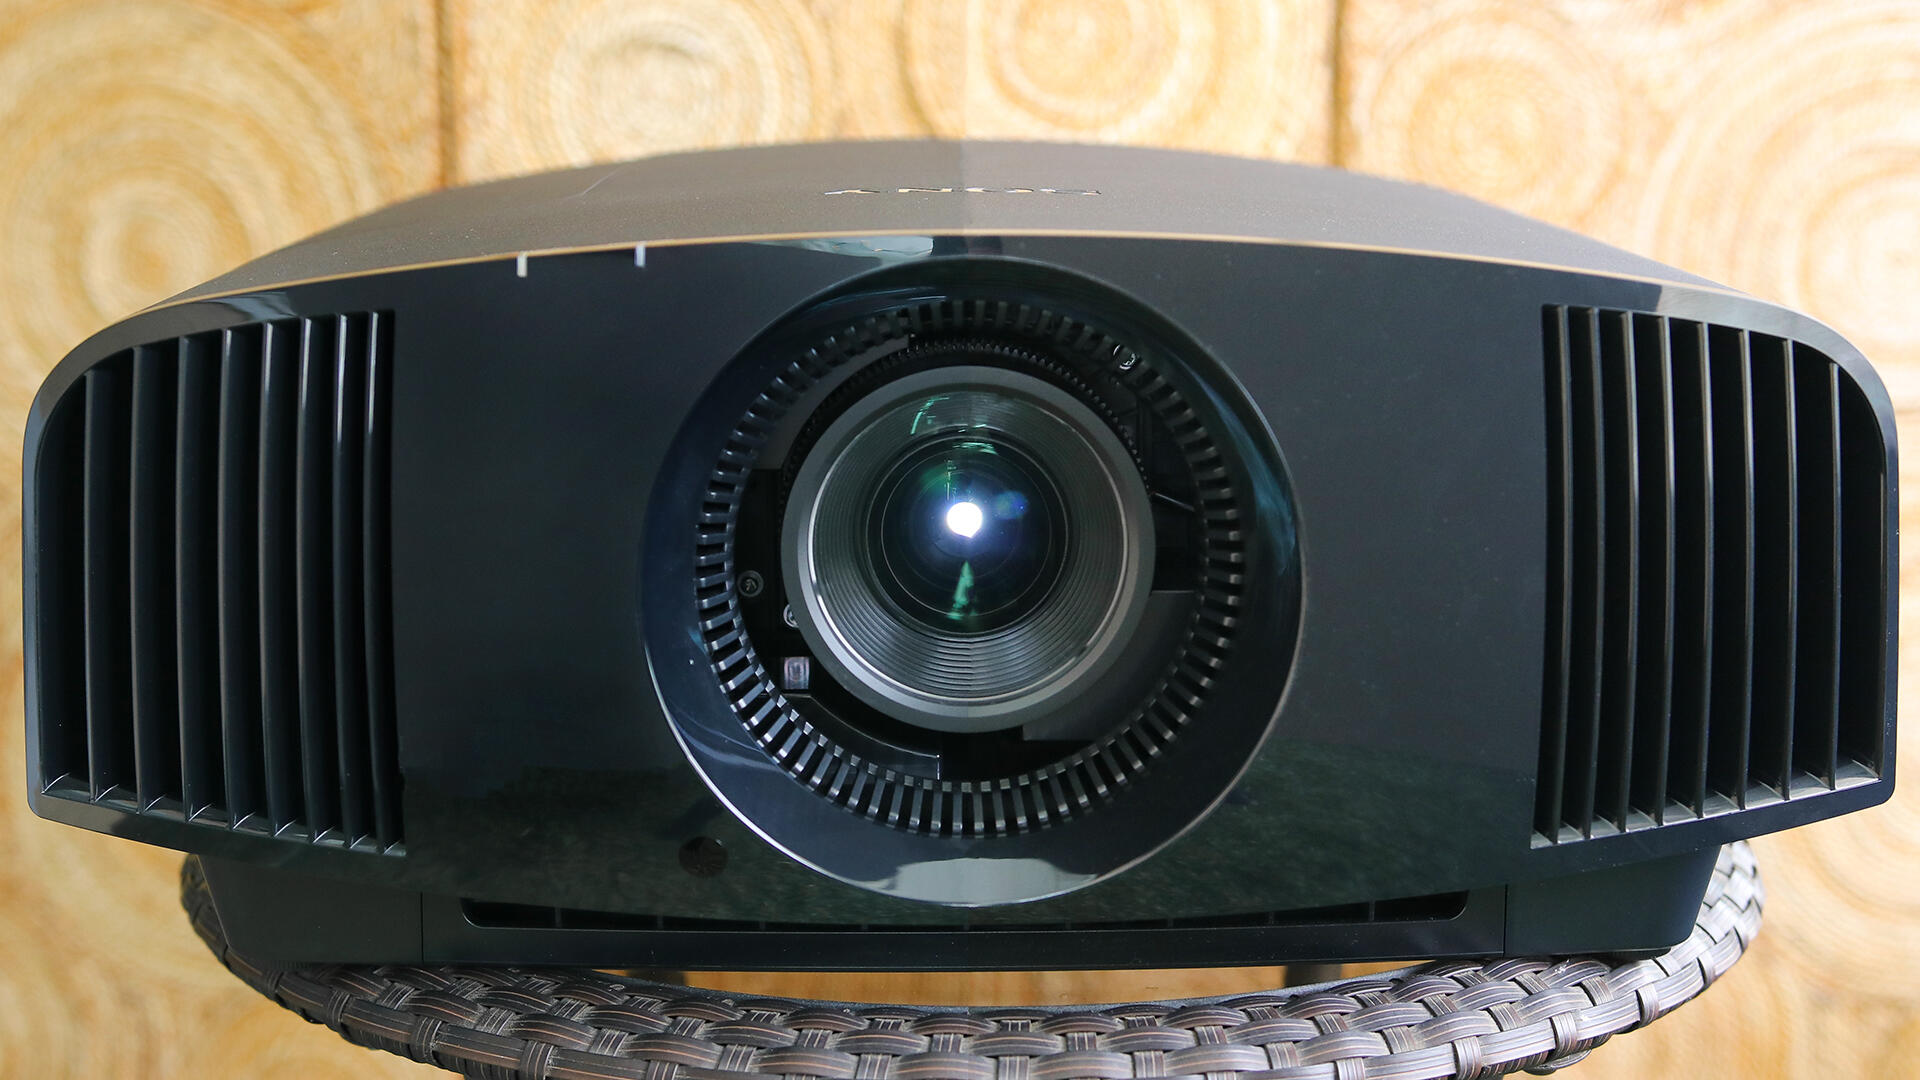 Sony VPL-VW325ES 4K projector review: Epic home theater     - CNET